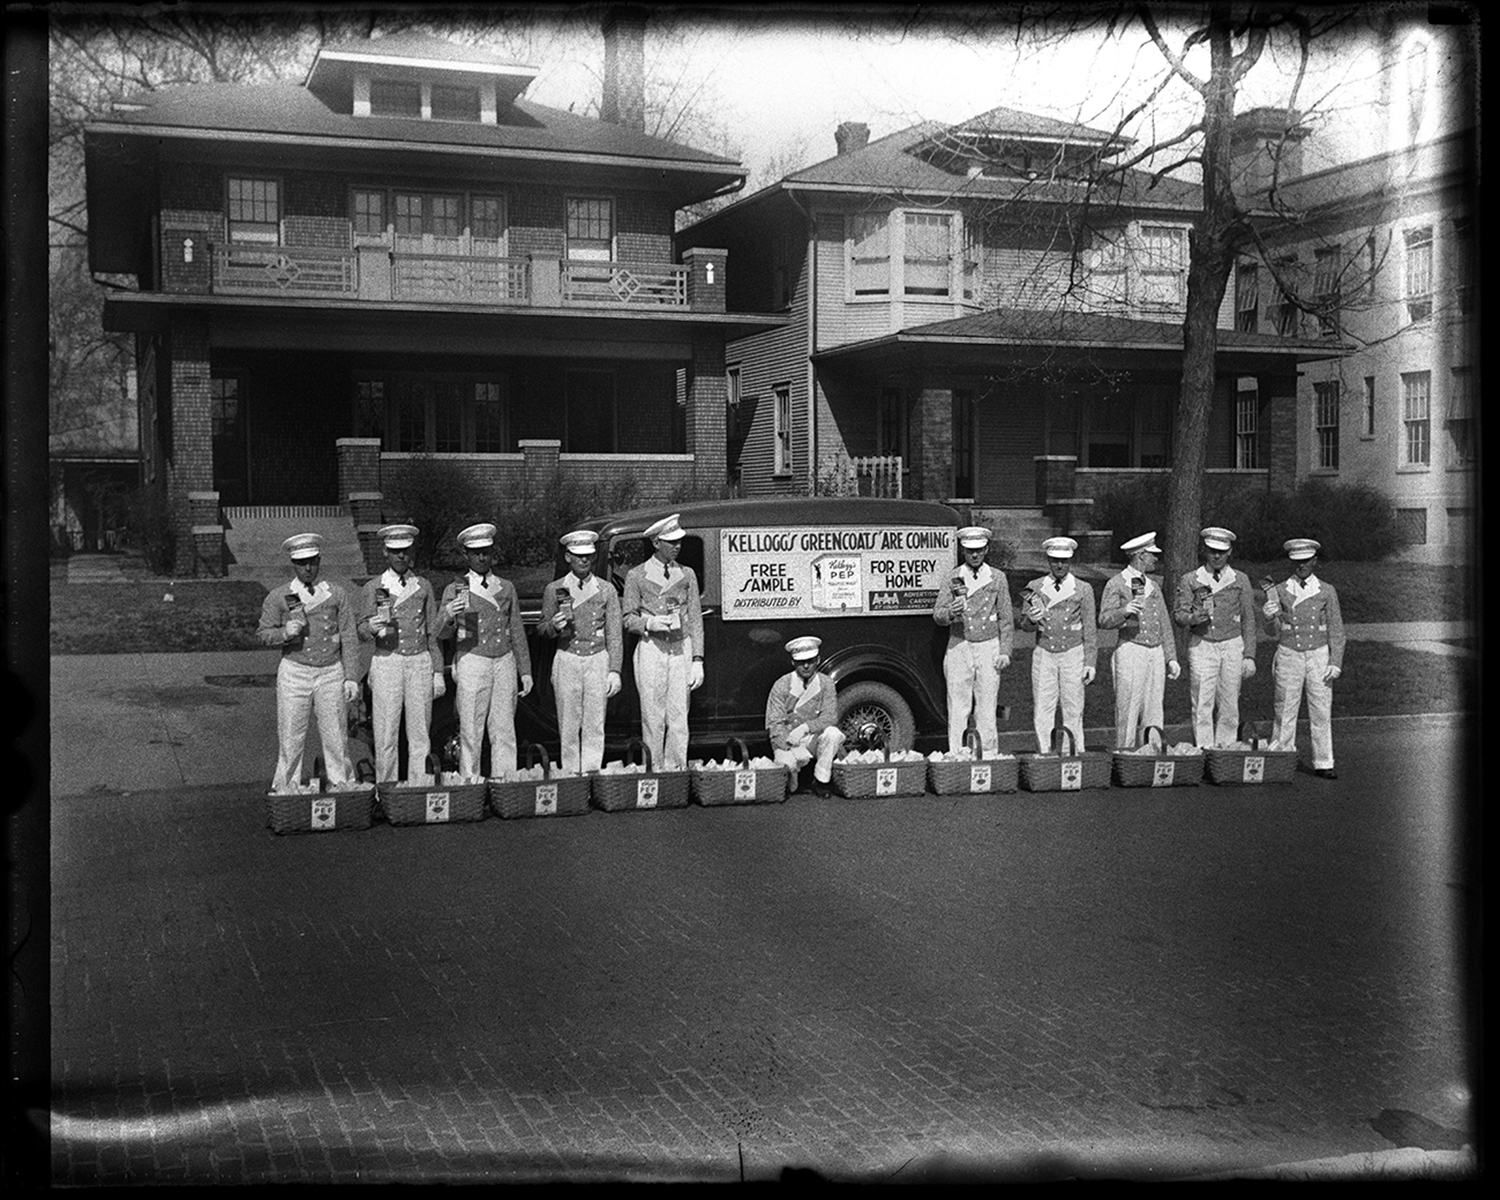 Representatives of Kellogg's Cereal dressed in white trousers, green coats, white hats and gloves, distributed the company's new Pep cereal door to door in the 900 block of South Sixth Street on April 19, 1934. File/The State Journal-Register